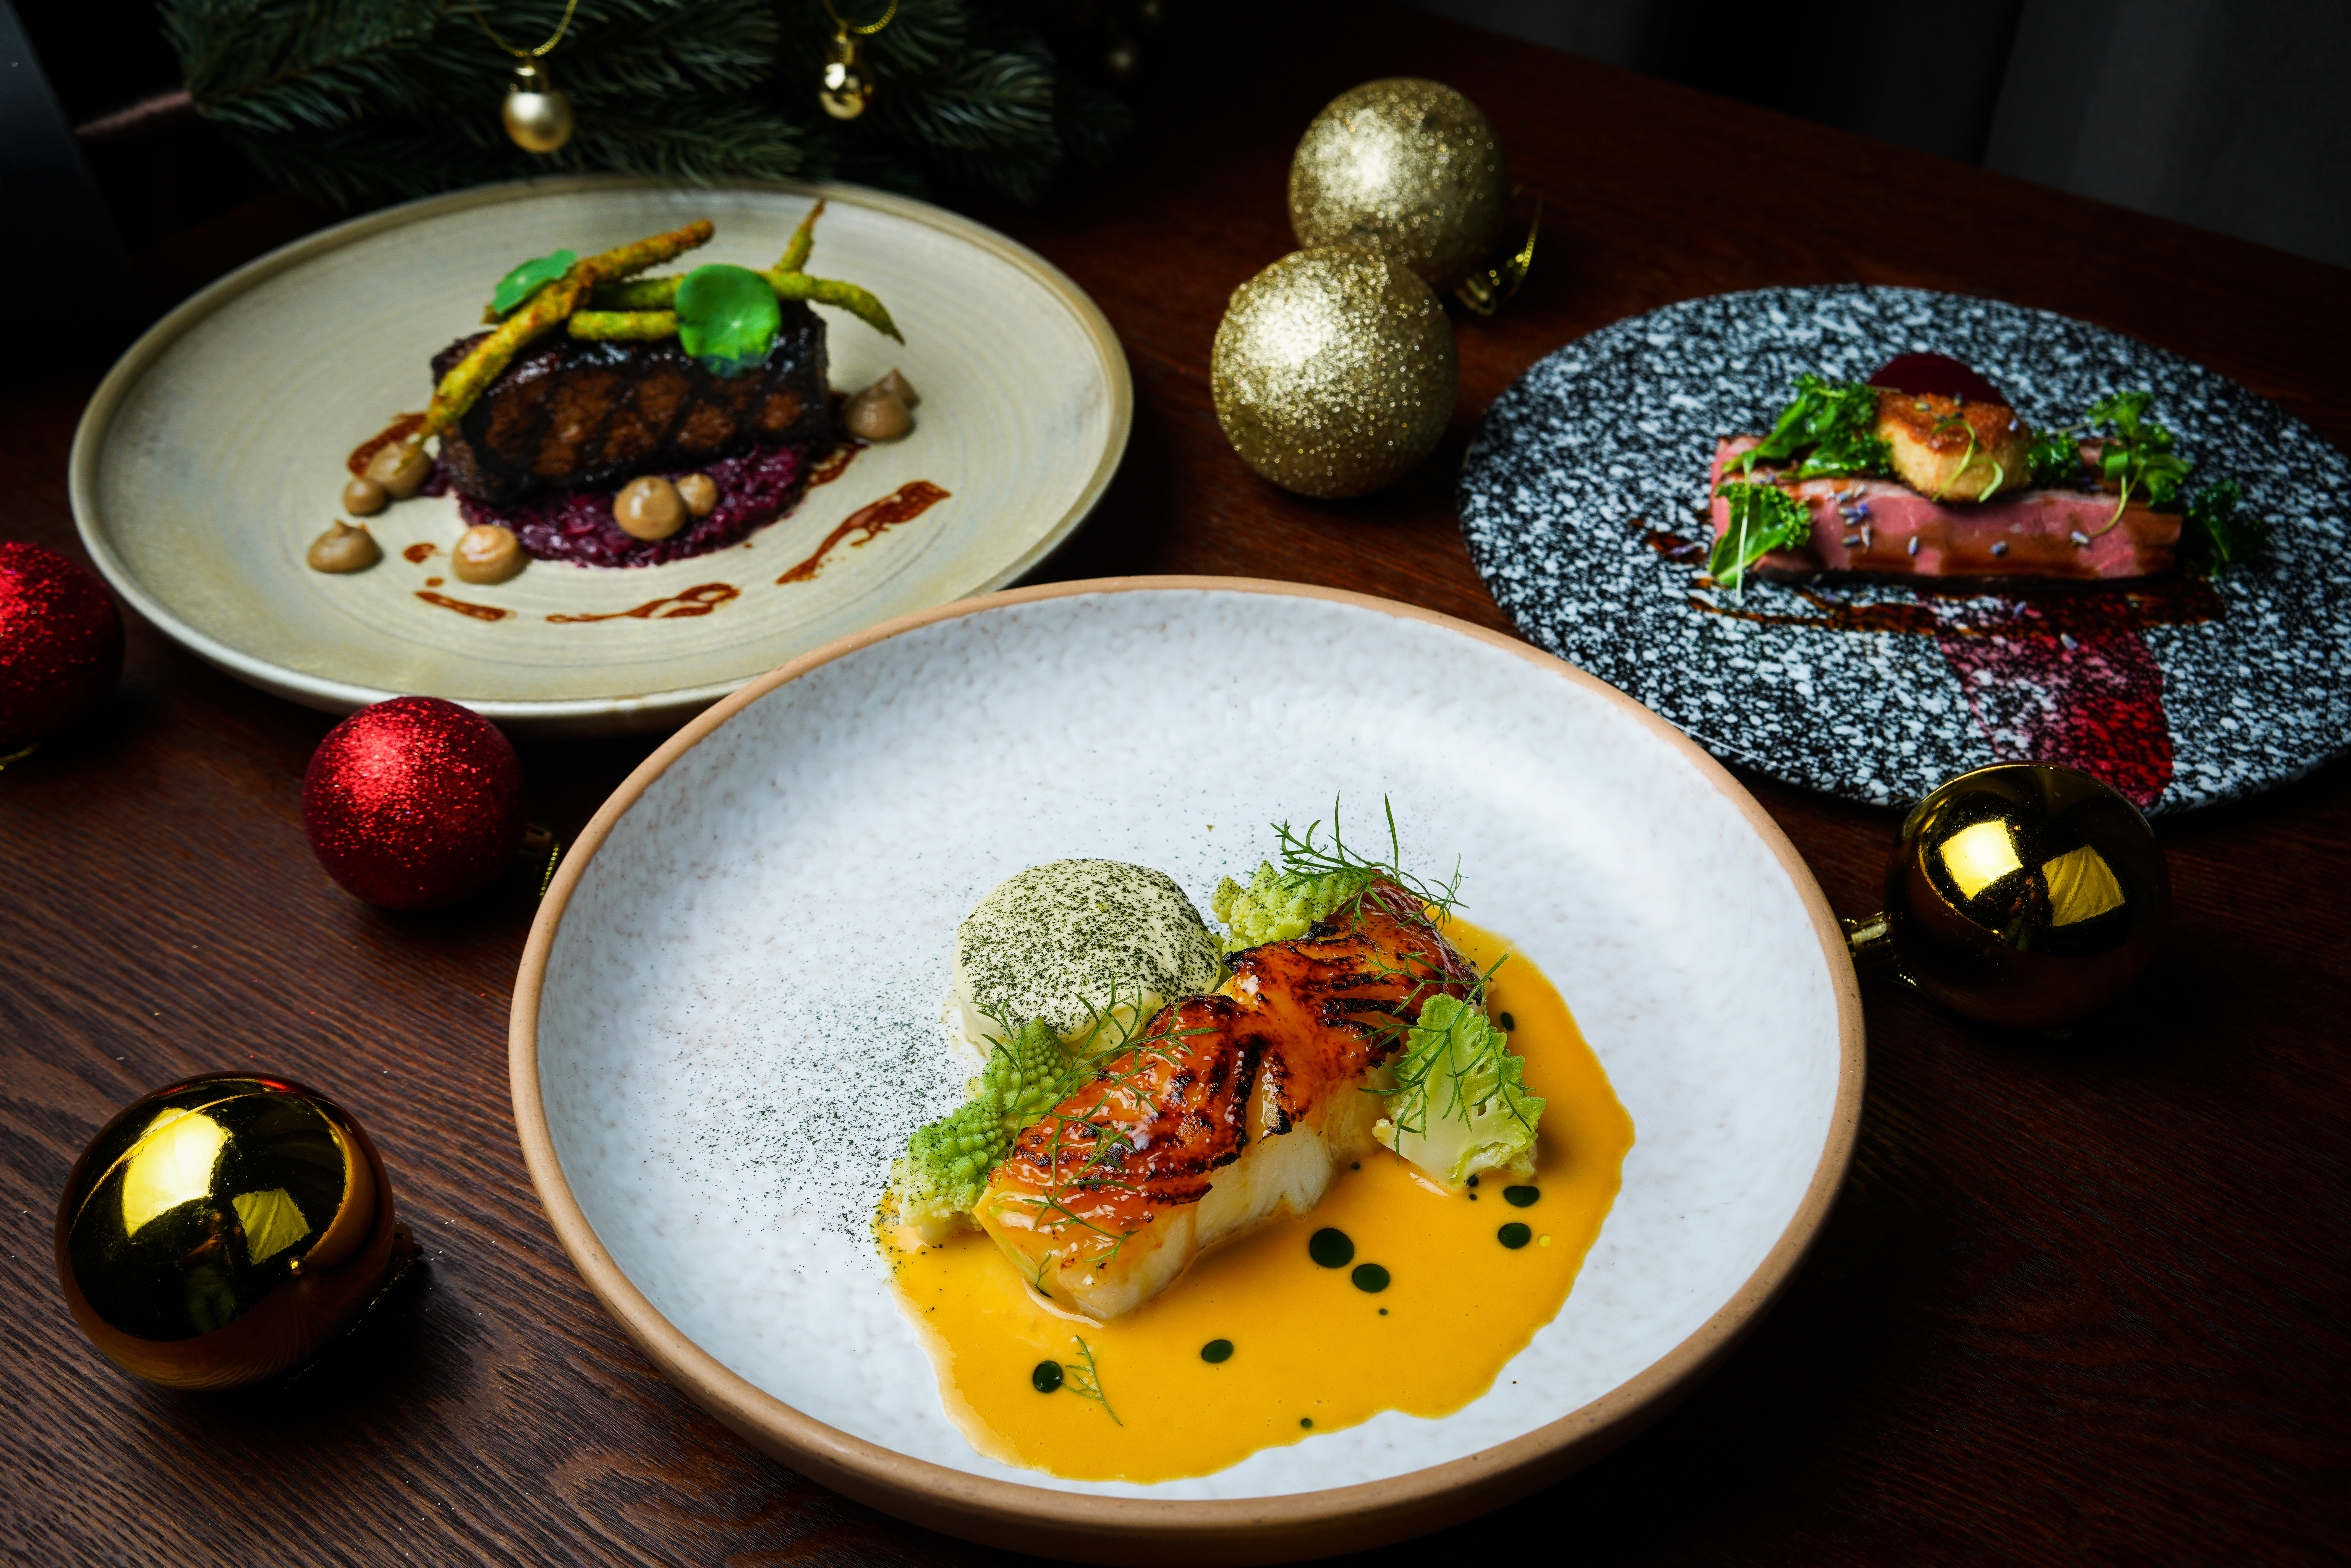 Christmas Eve dinner at The Spot Singapore, featuring a 6 course dinner menu coupled with sparkling wine.